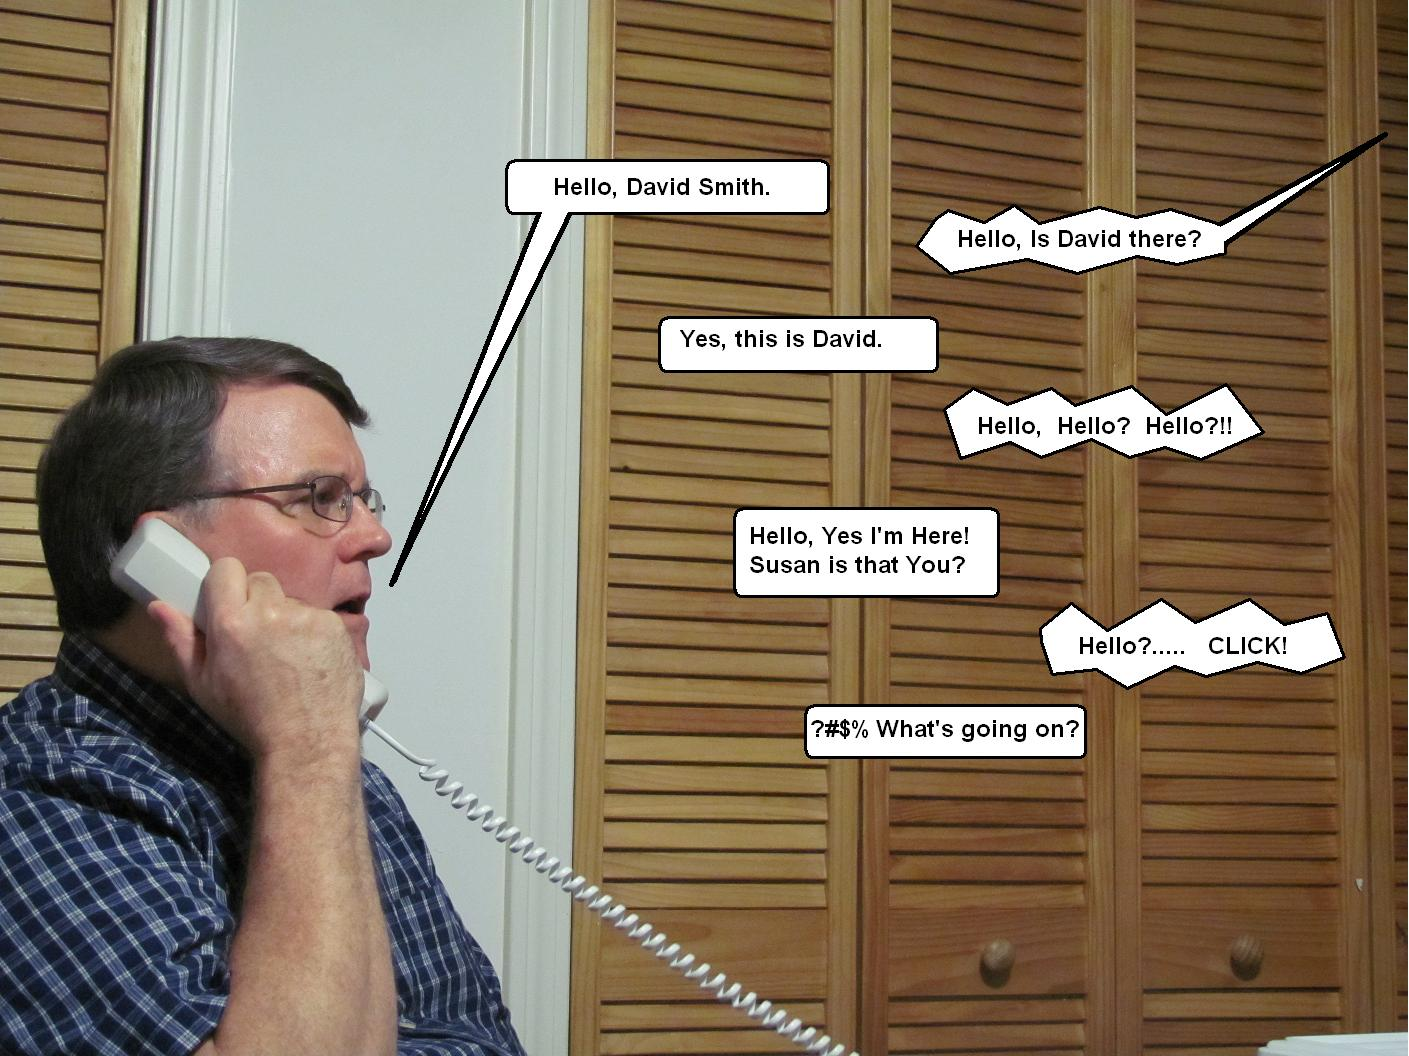 'Can You Hear Me Now?' Telephone Practical Joke